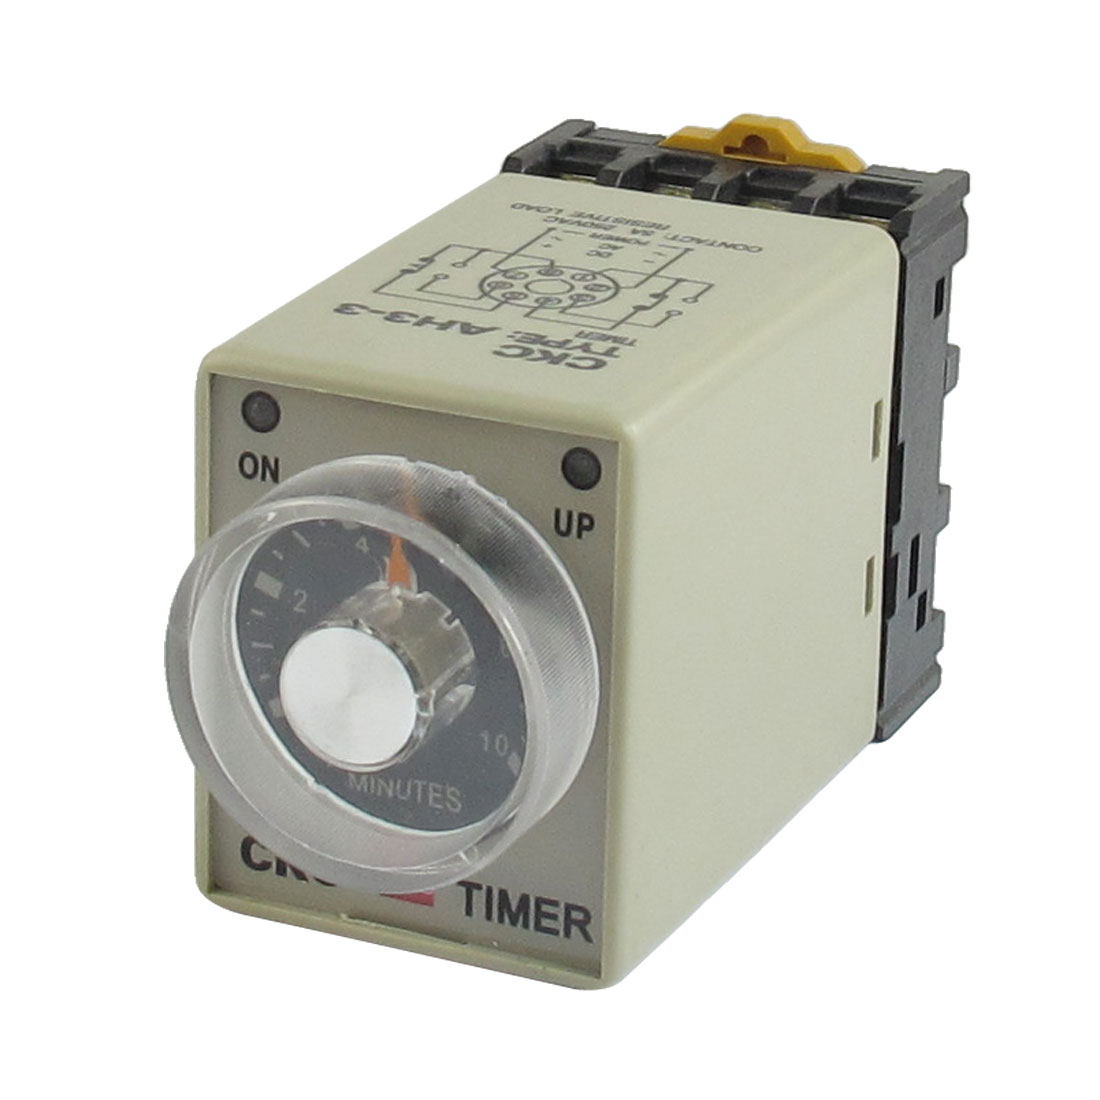 AH3-3 110VAC Power On 0-10Min 10 Minutes Delay Timer Time Relay + Socket